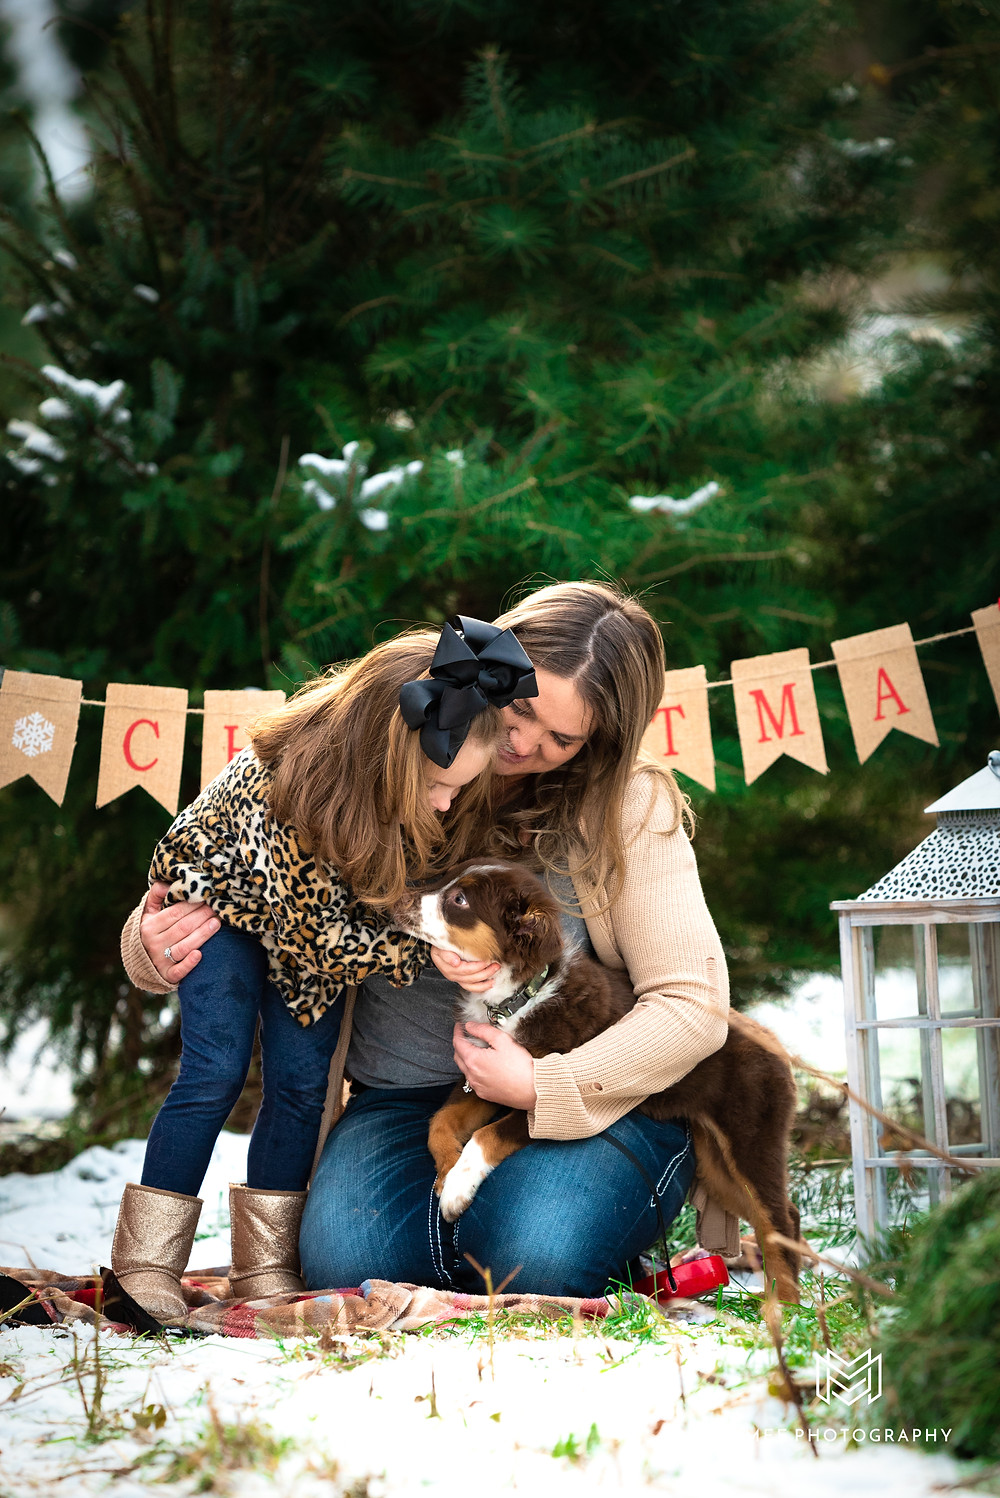 Christmas card photo session at a Christmas tree farm in East Liverpool, OH. Mother and daughter cuddling new Australian shepherd puppy.